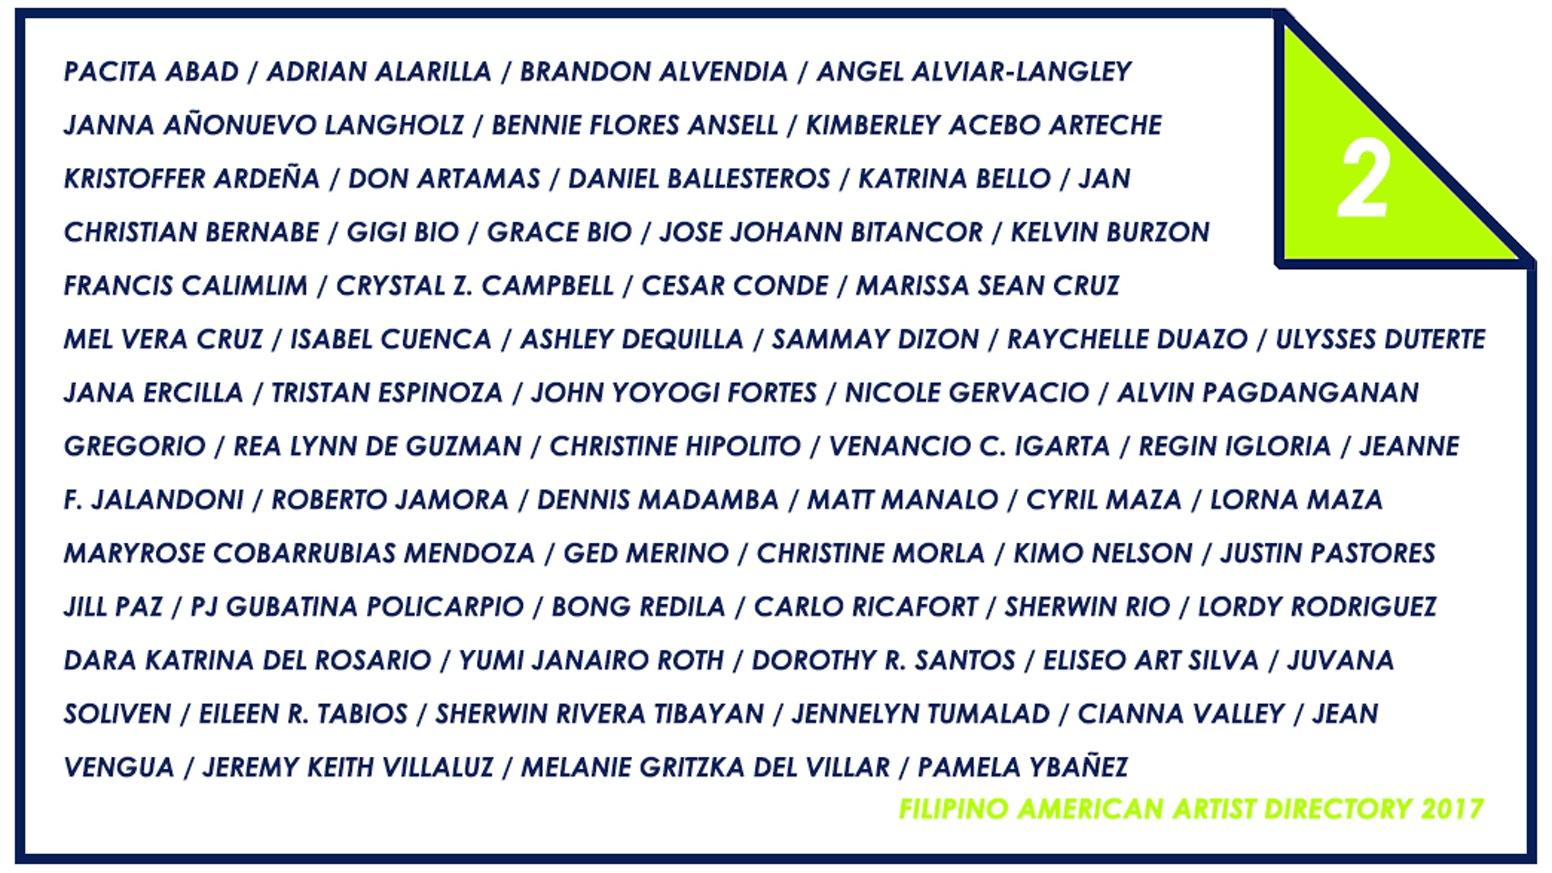 Publication featuring 60 contemporary Filipino American artists from across the United States.